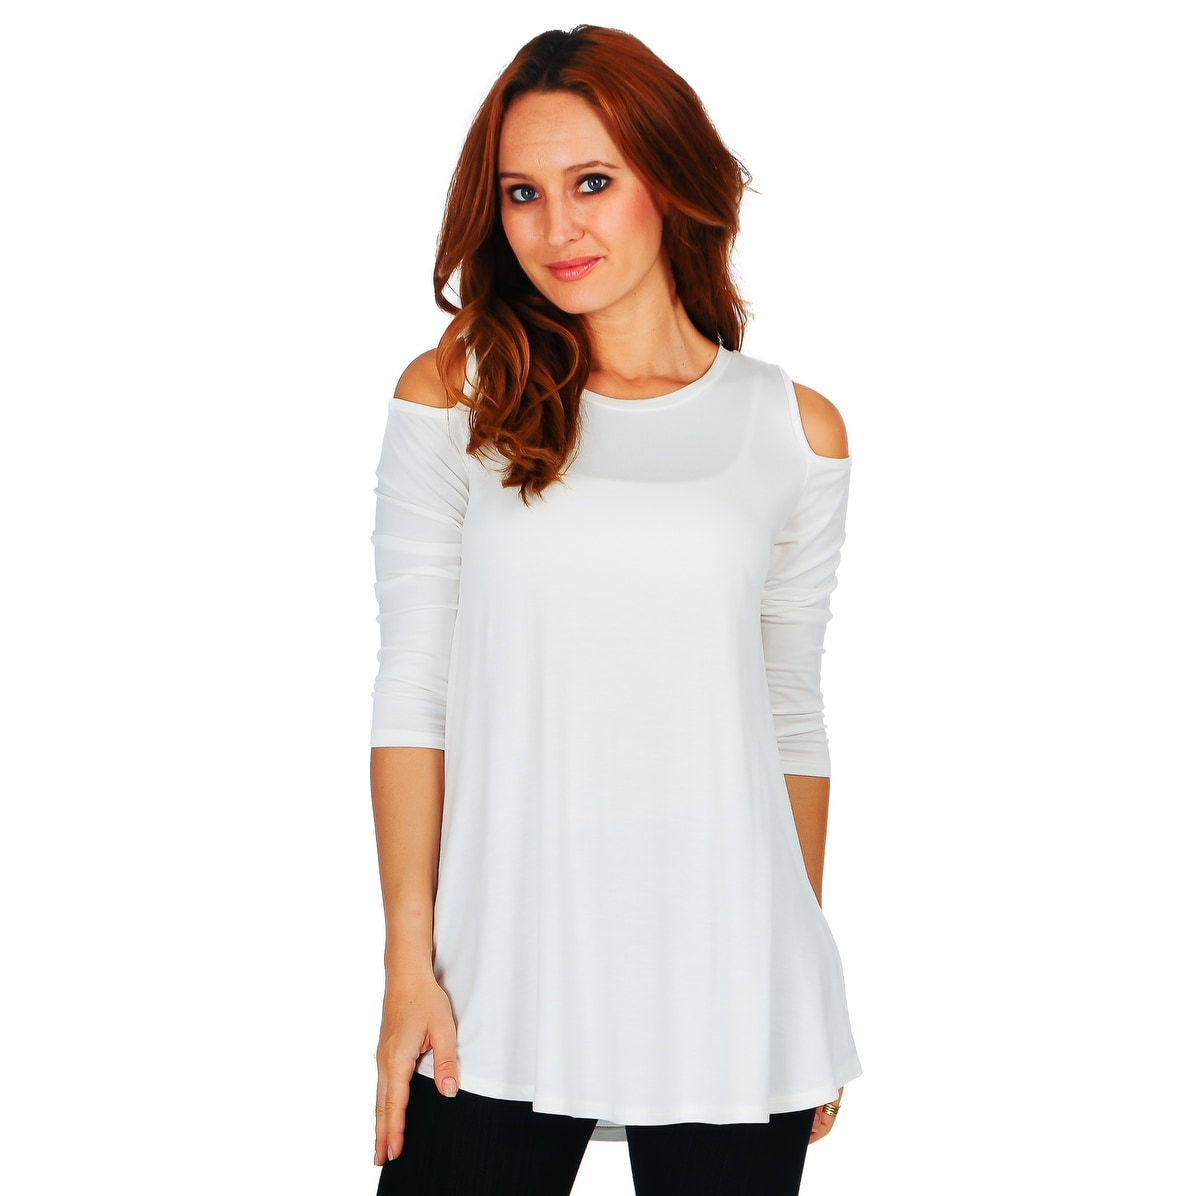 8e4fcae85edc Buy 3/4 Sleeve Shirts Online at Overstock | Our Best Tops Deals